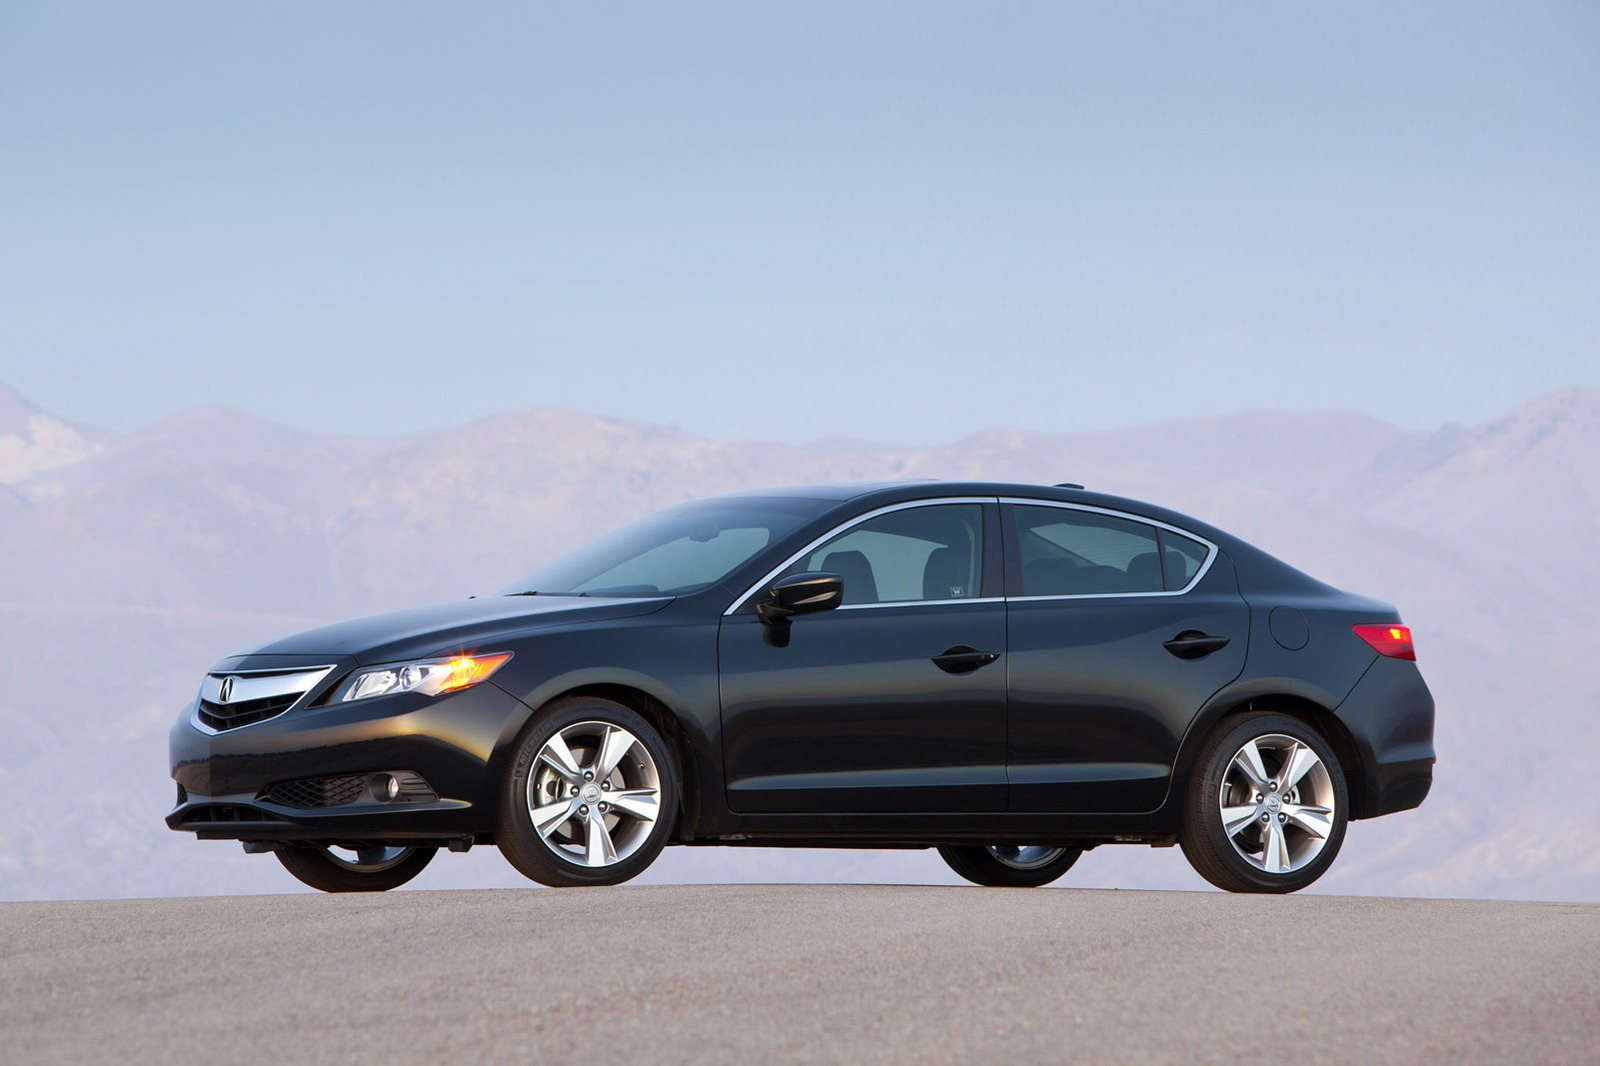 ... Acura ILX together with 2014 Ford Fusion Hybrid. on acura ilx dealer